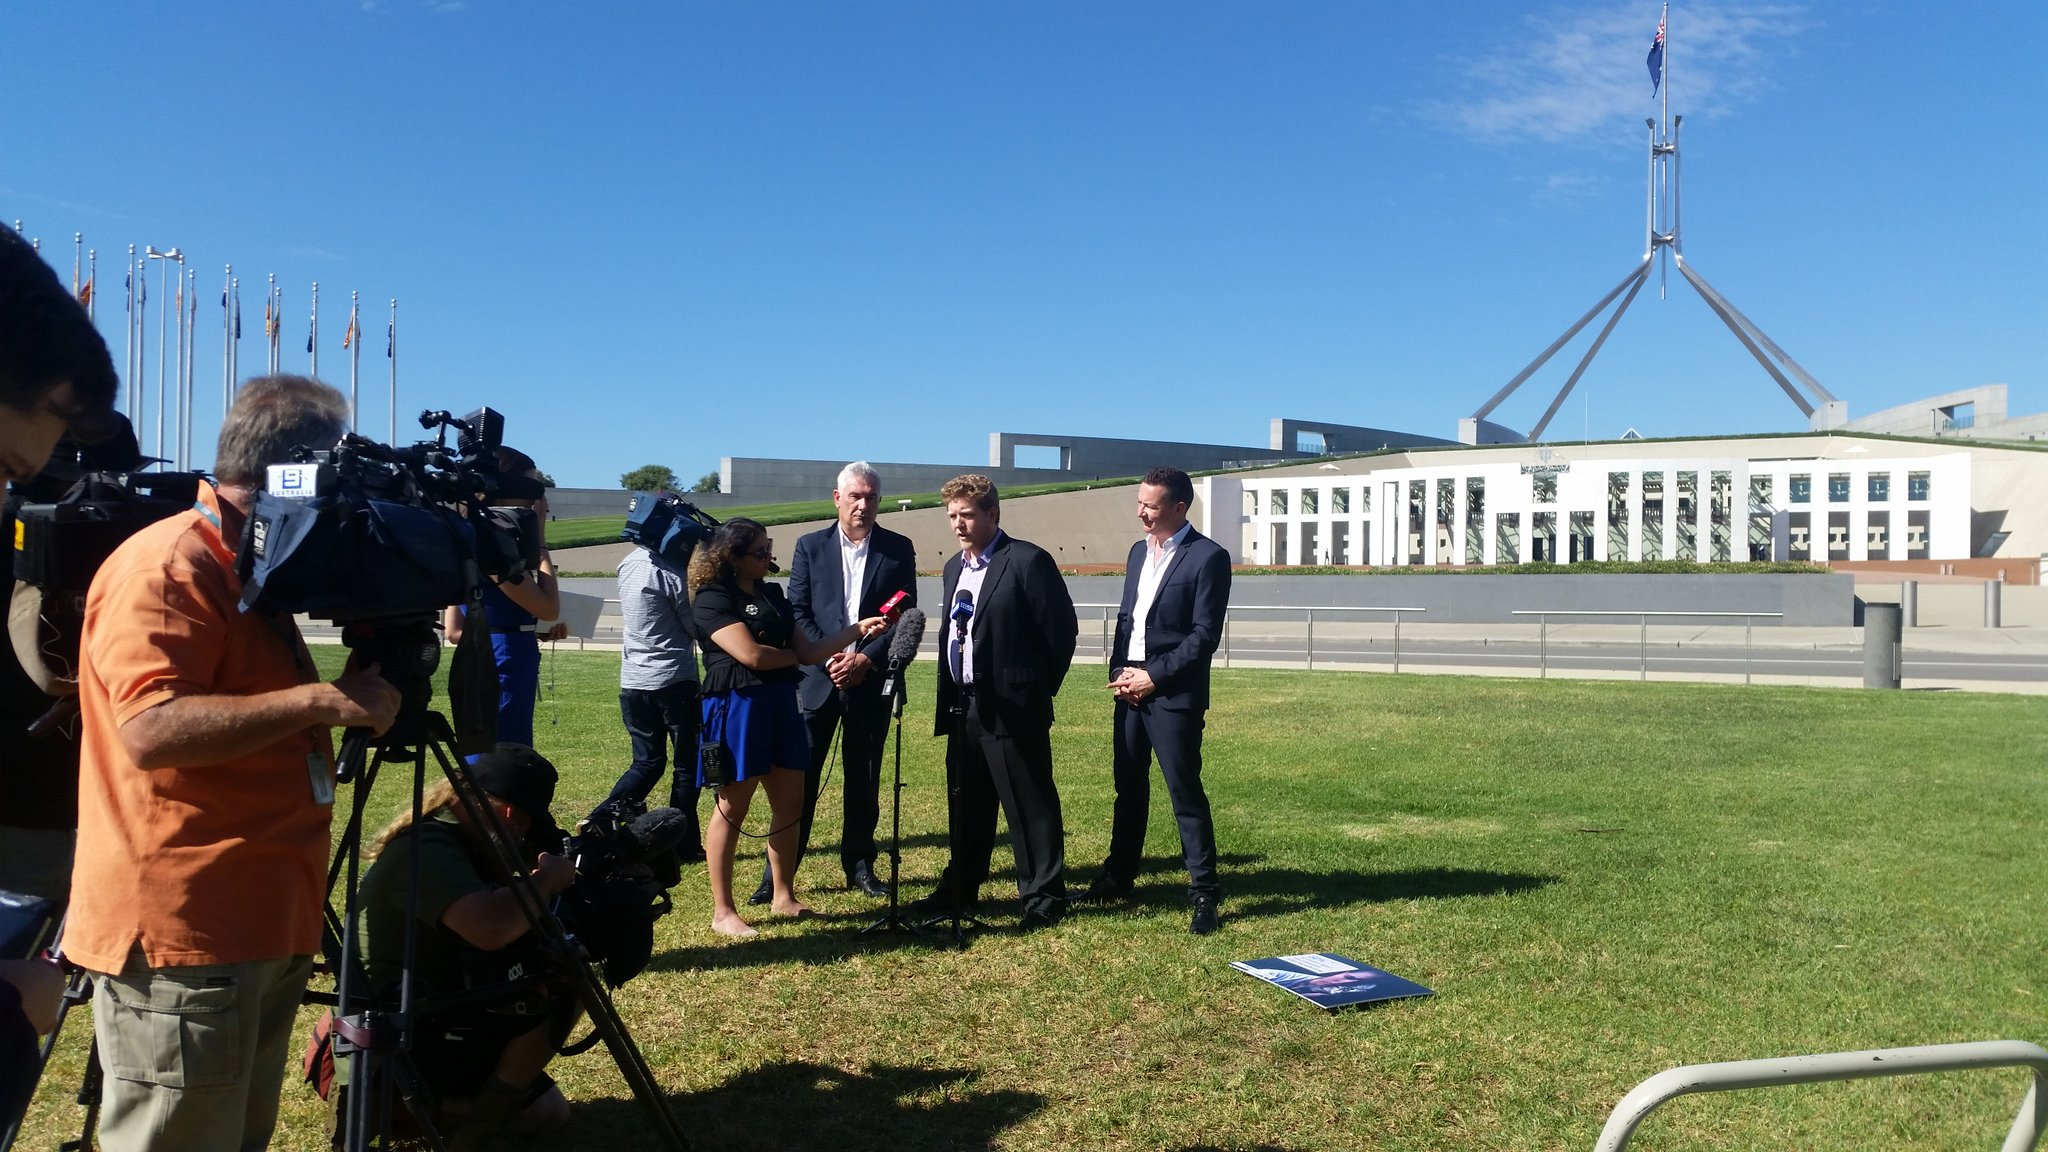 Ned Cutcher speaking to media outside Australian parliament house